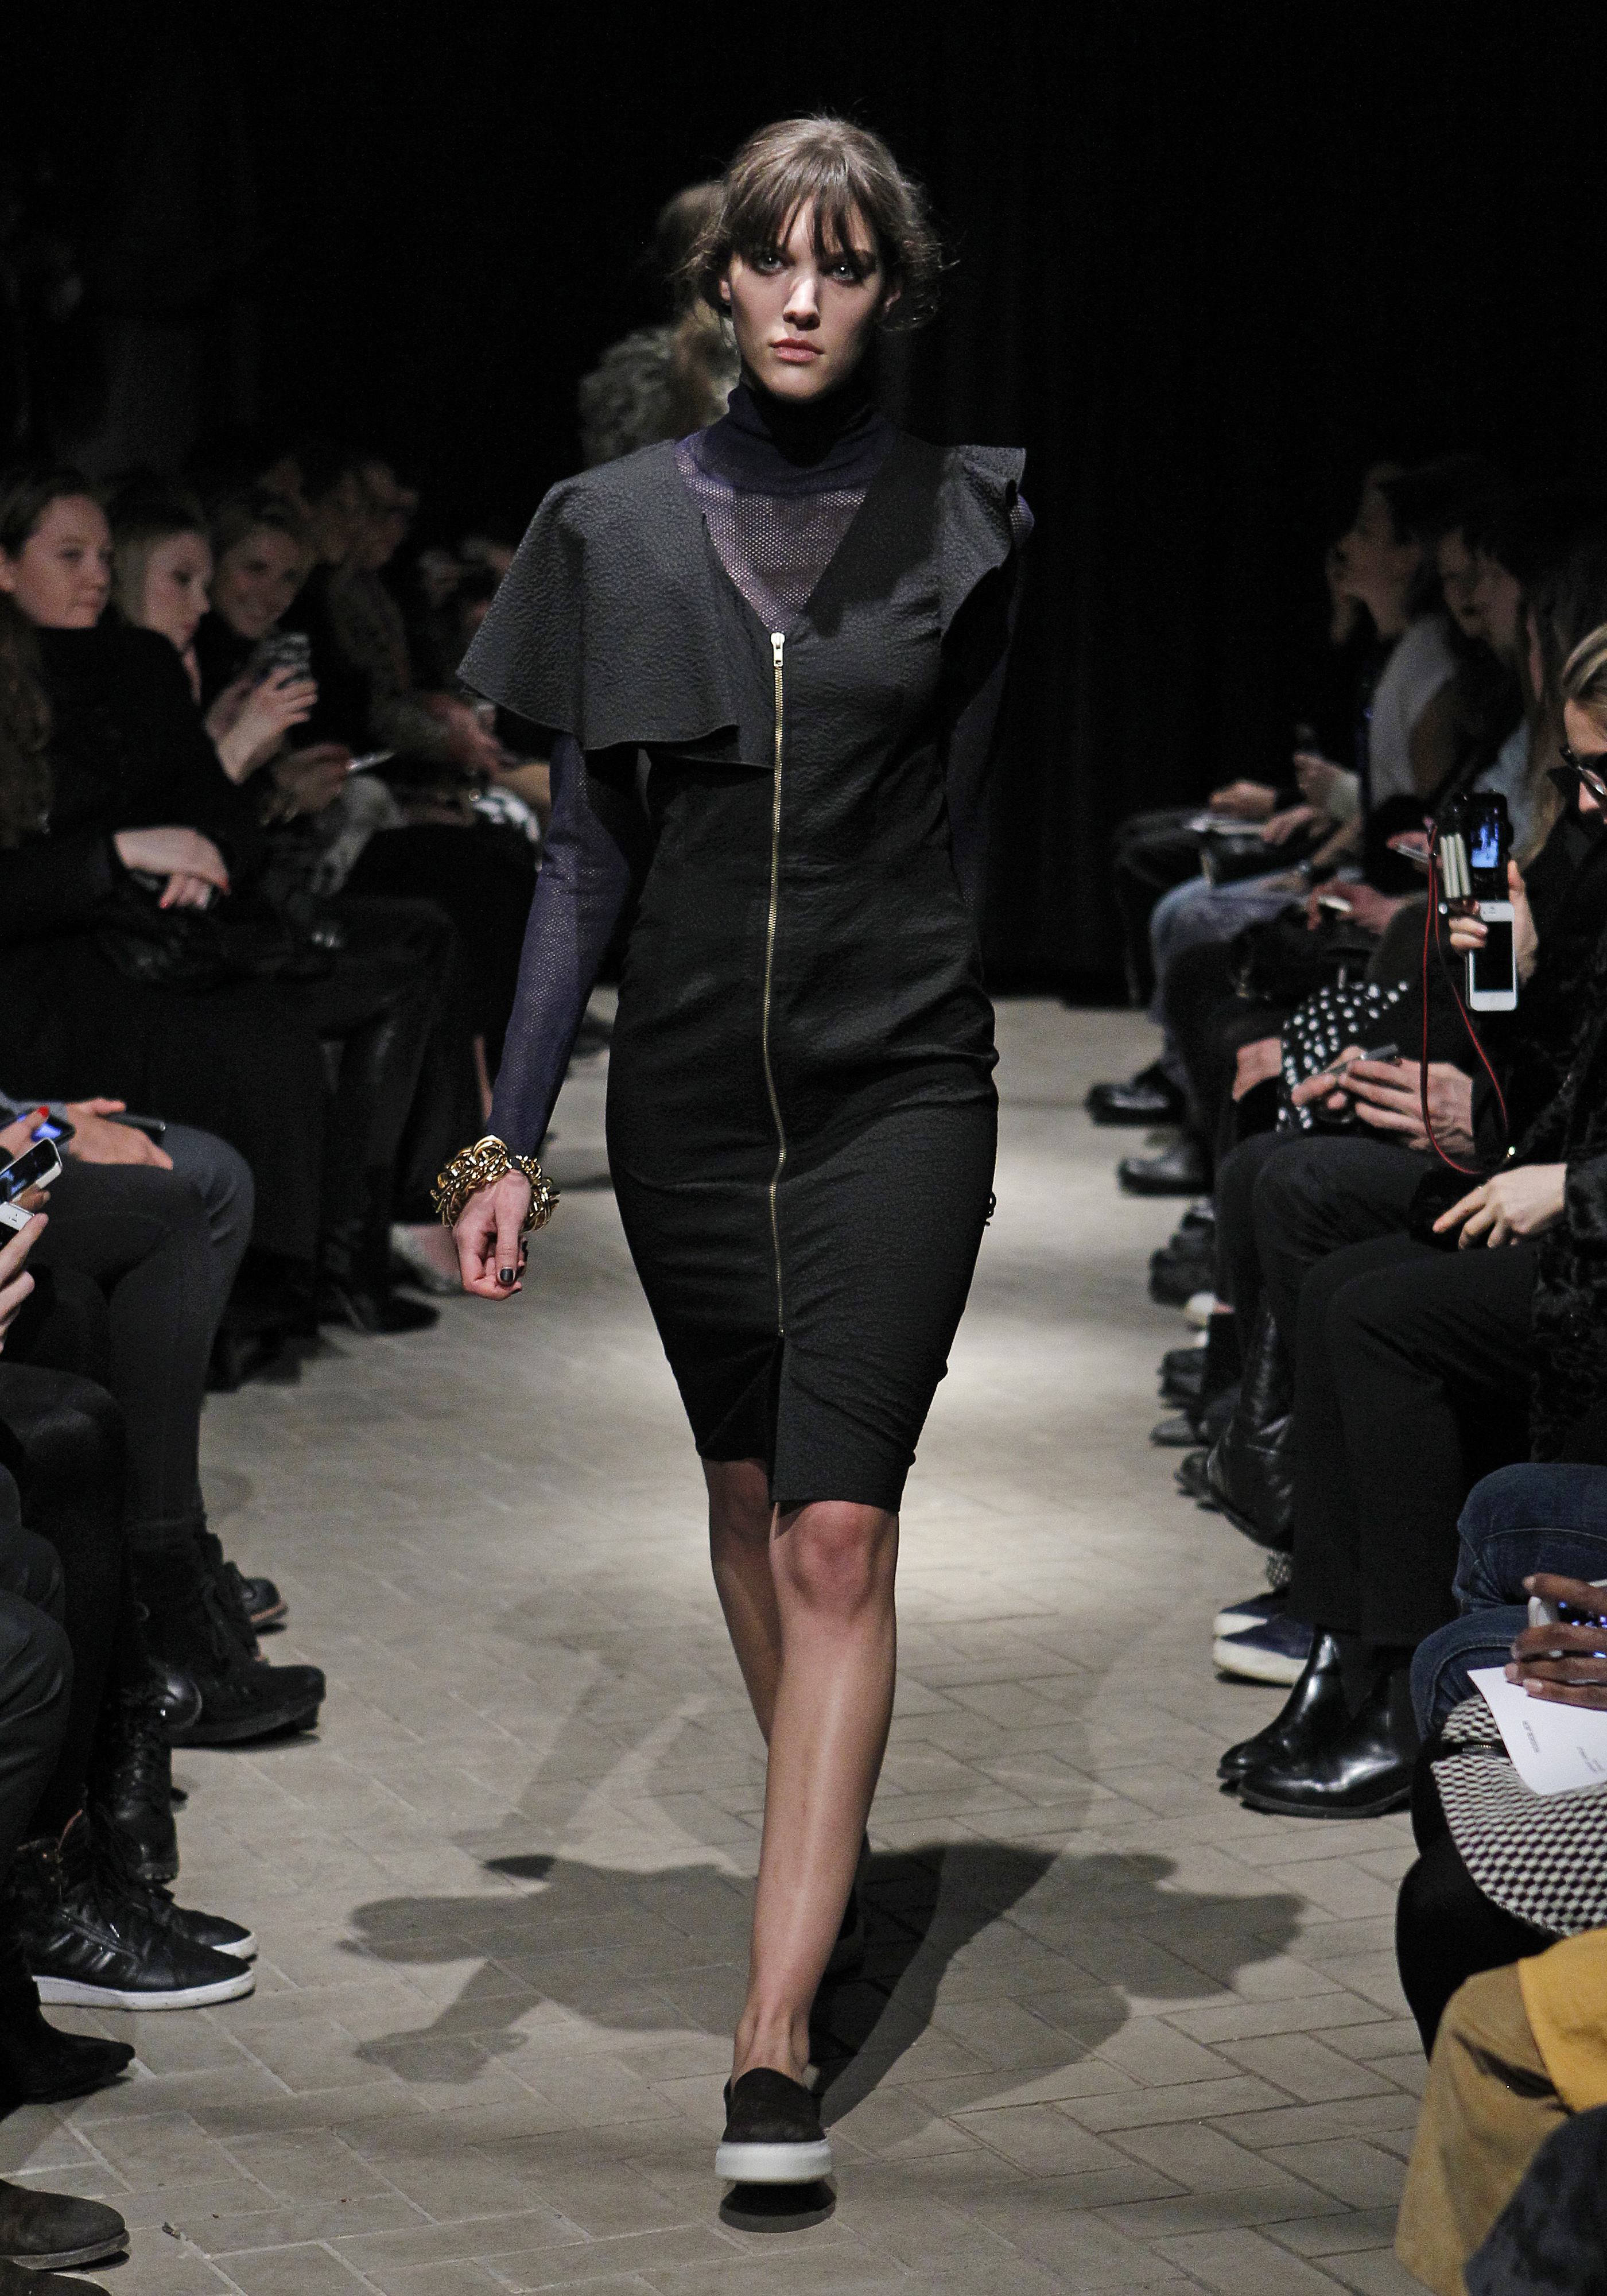 FW14 RODEBJER NEW YORK 02/06/2014